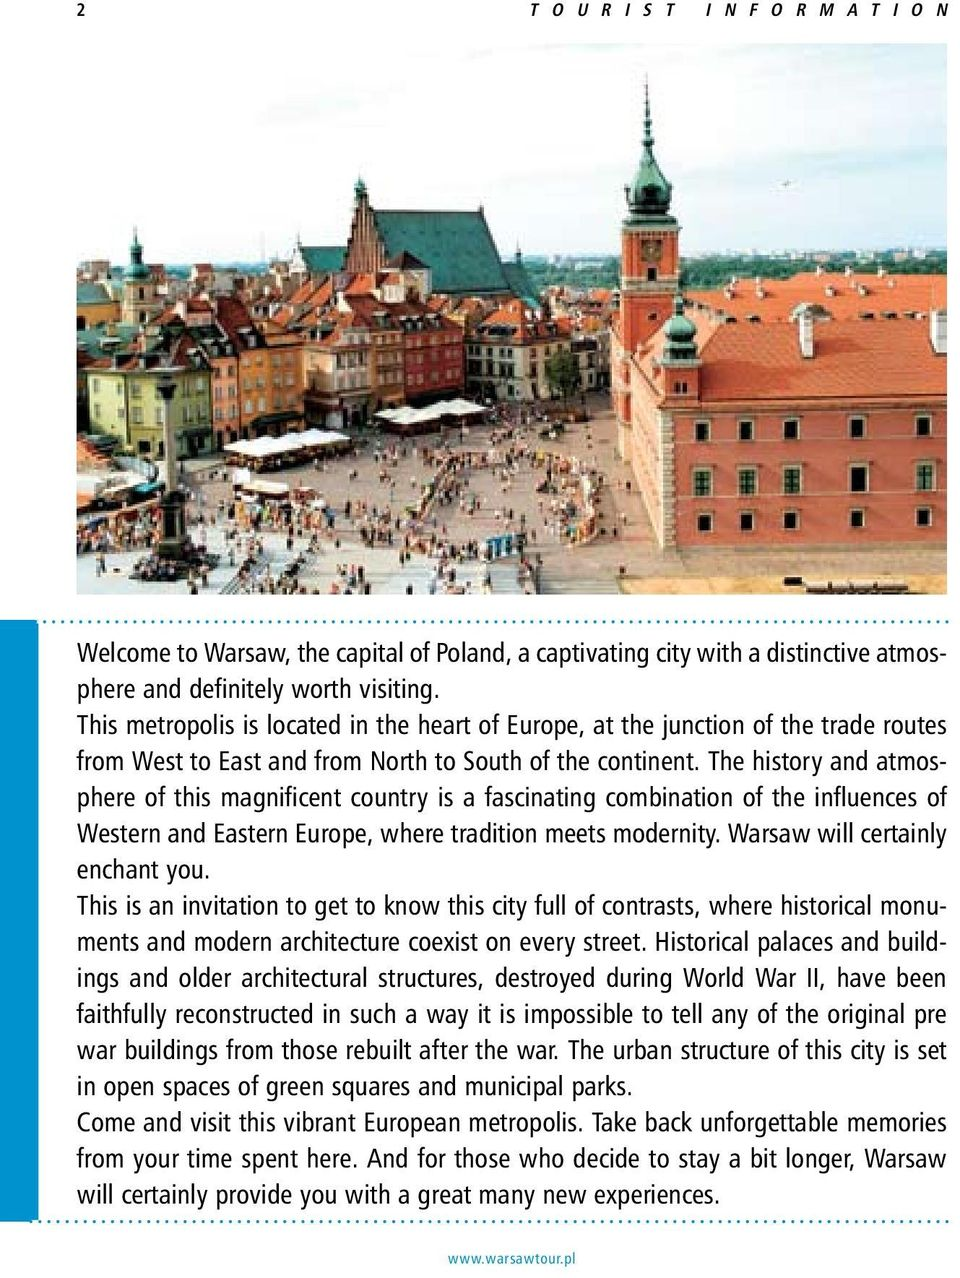 The history and atmosphere of this magnificent country is a fascinating combination of the influences of Western and Eastern Europe, where tradition meets modernity. Warsaw will certainly enchant you.